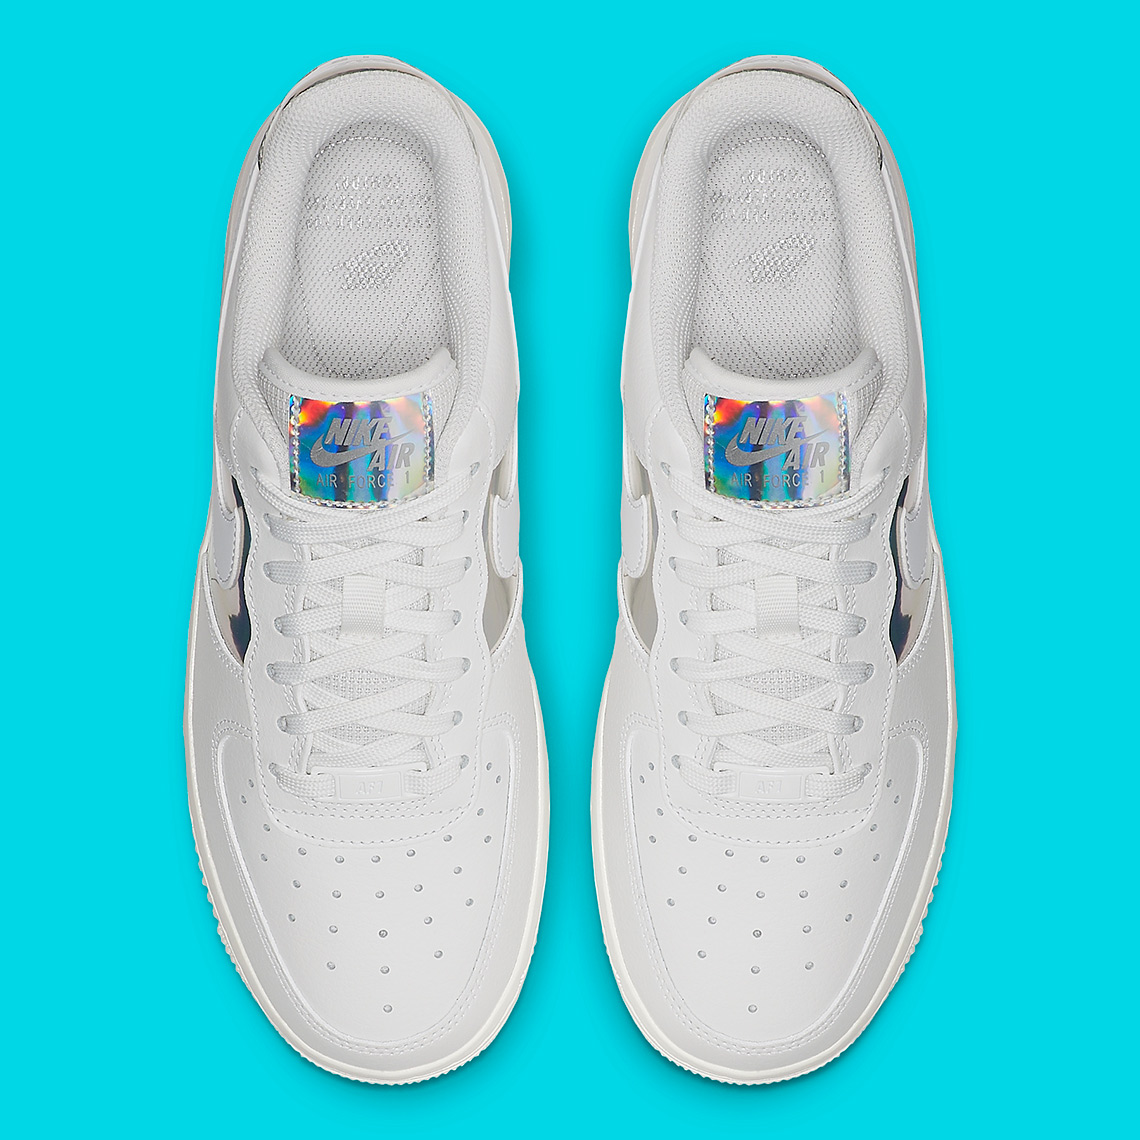 Nike Air Force 1 Low 'Iridescent Silver' | CJ9704 100